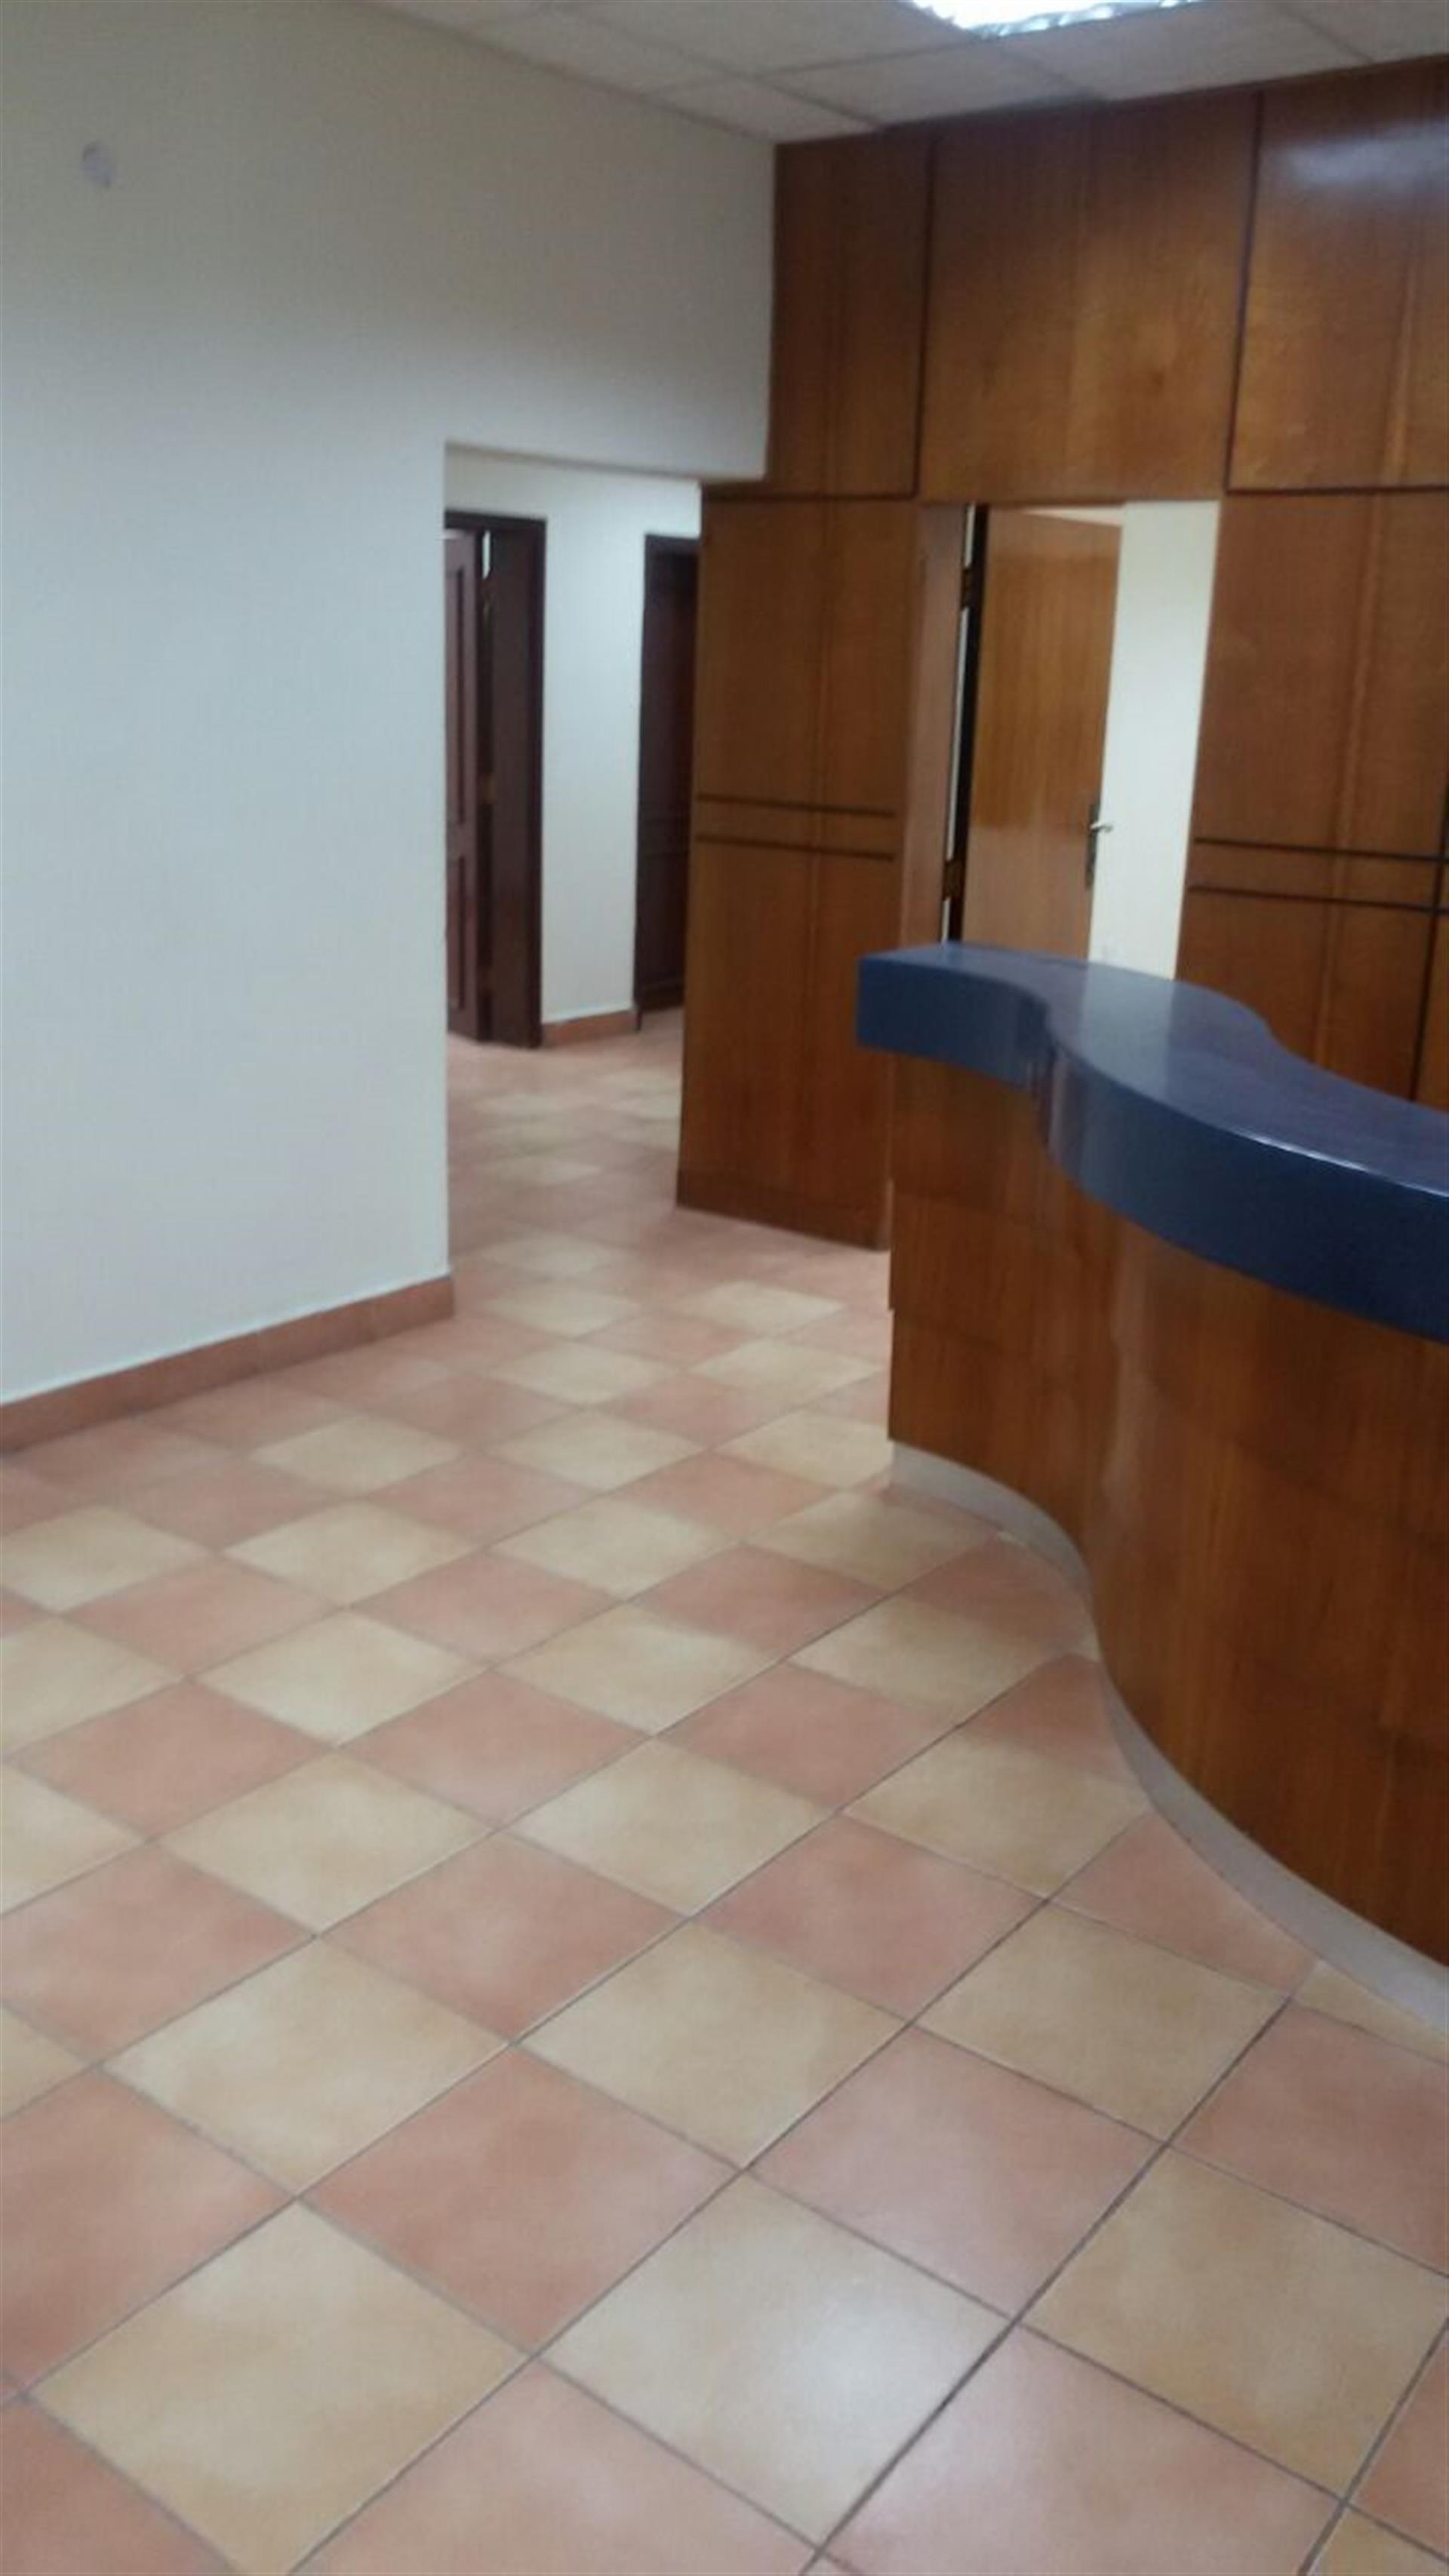 For Rent Offices 3 BR at Al nser Street Without Commission